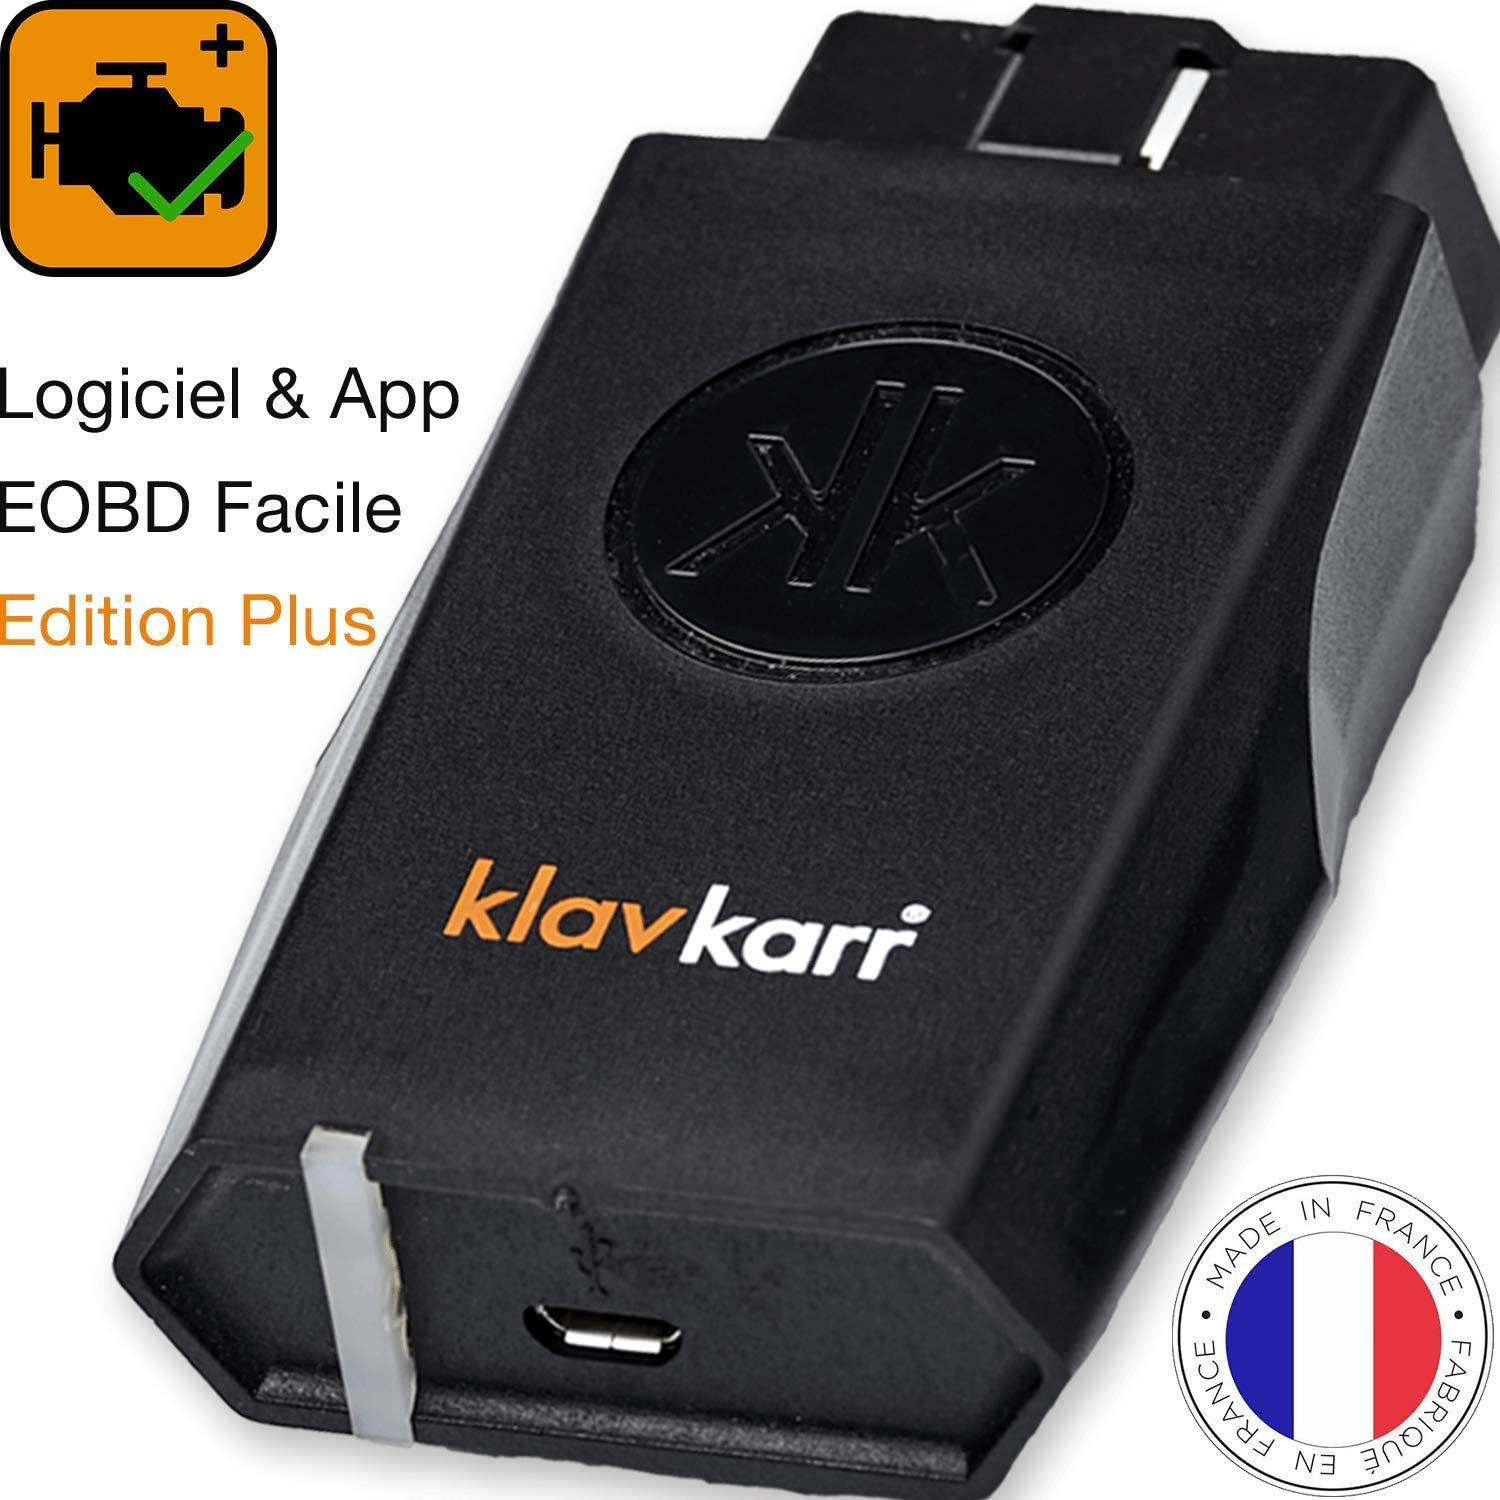 Klavkarr 210 Obd2 Diagnostic Tool For All Car Brands In German Obd Plug For Error Memory Bluetooth Adapter For Iphone Android Auto